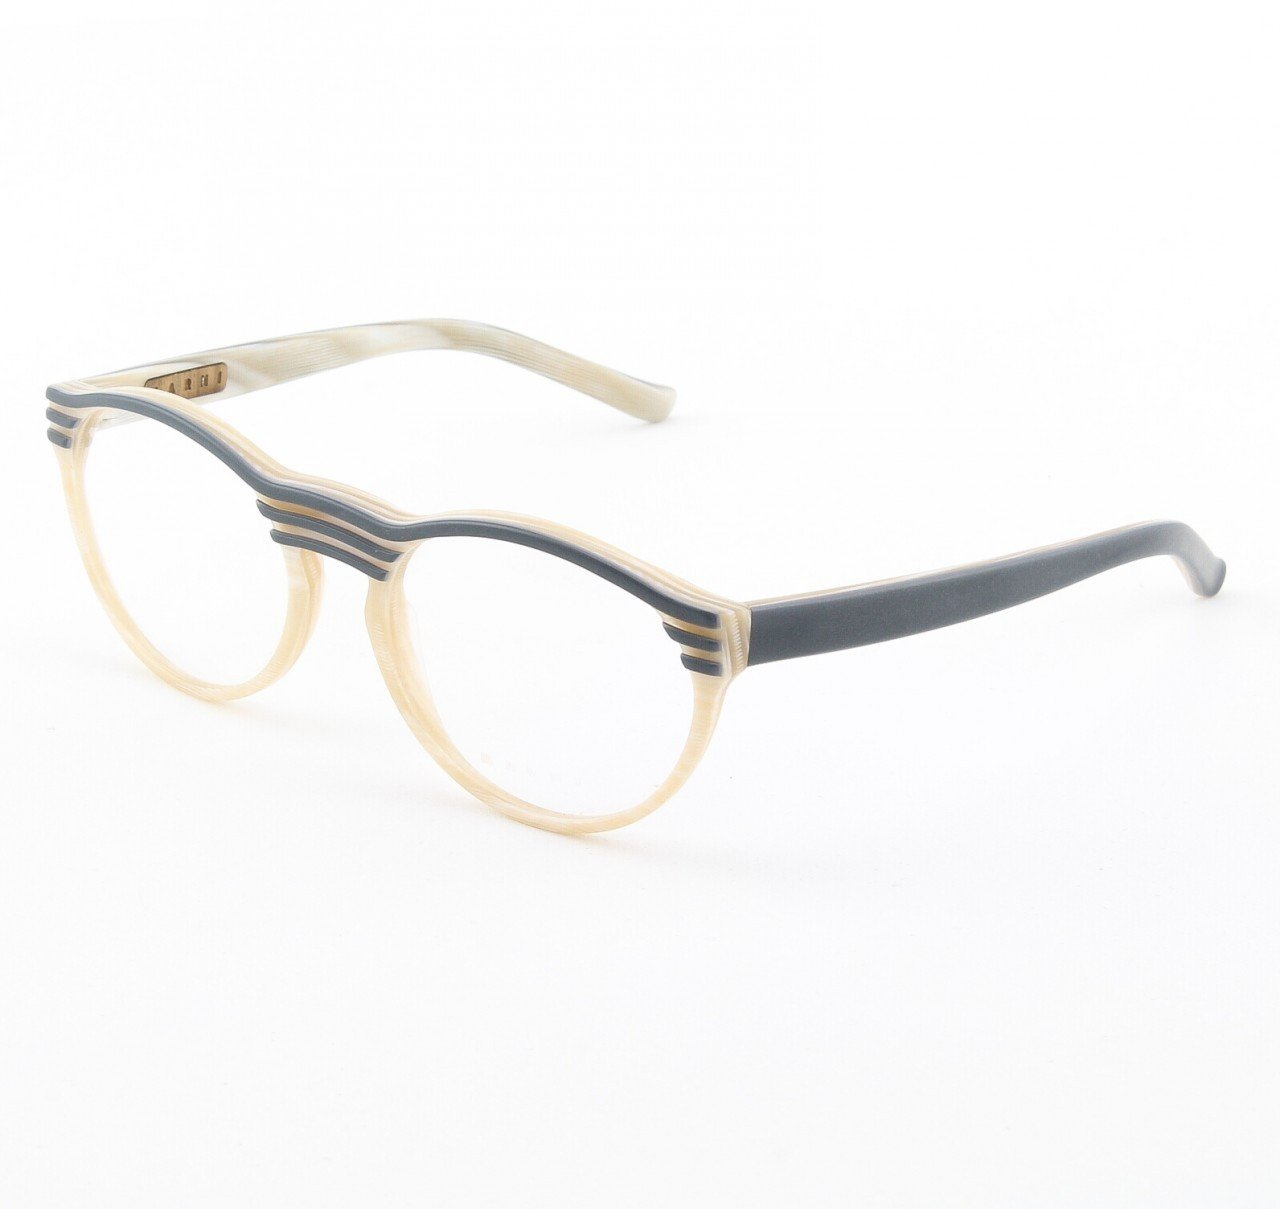 Marni MA688 Eyeglasses Col. 02 Marbelized Cream Frame with Slate Gray Accents and Clear Lenses